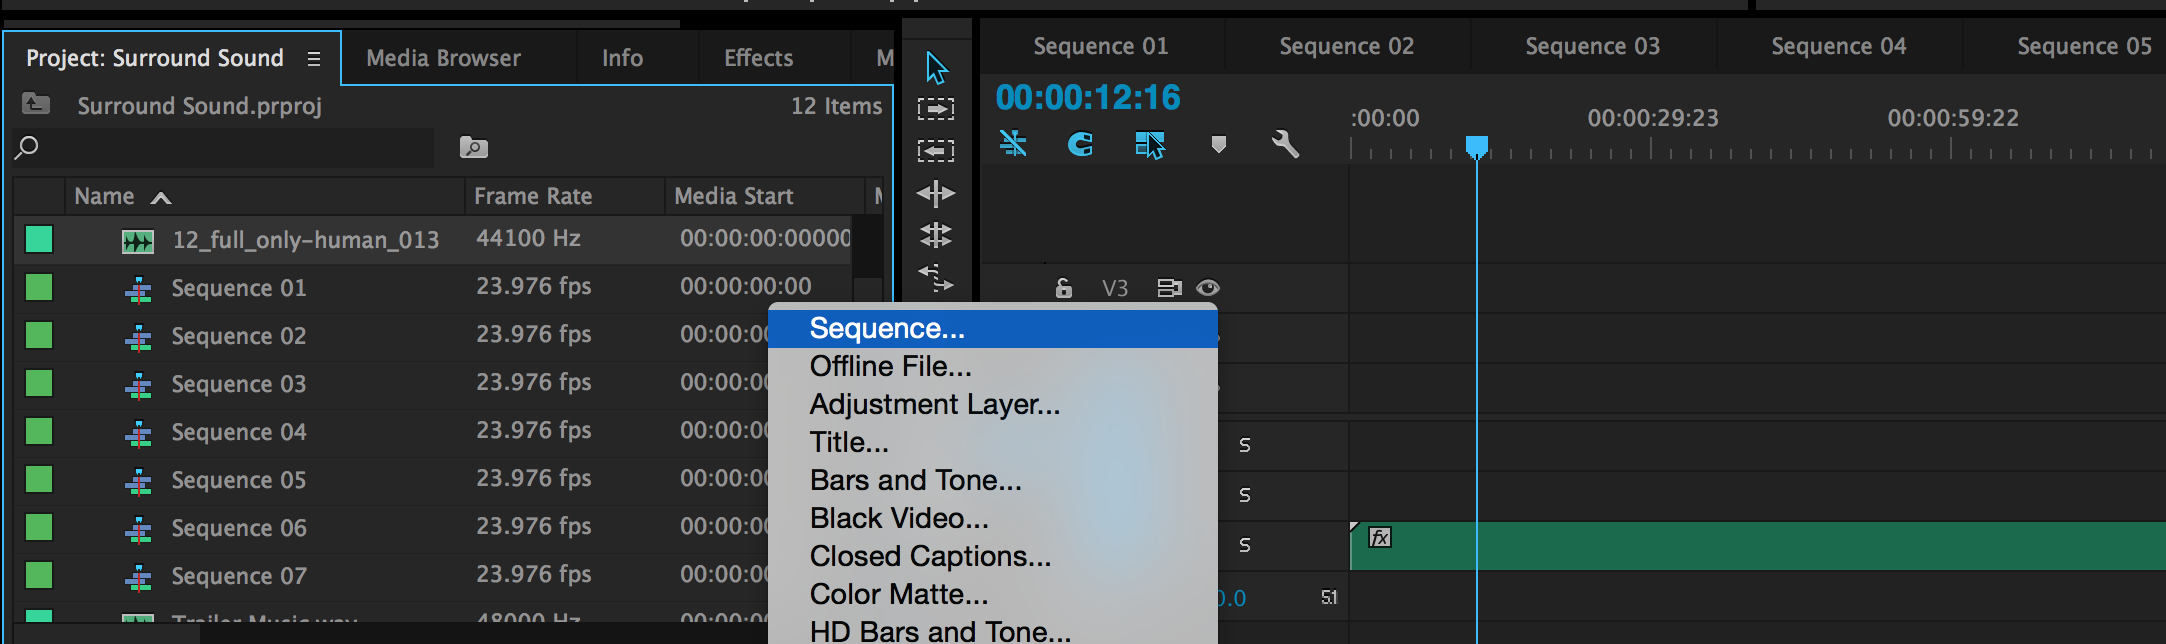 51 surround sound mixing in adobe premiere create a new sequence ccuart Choice Image